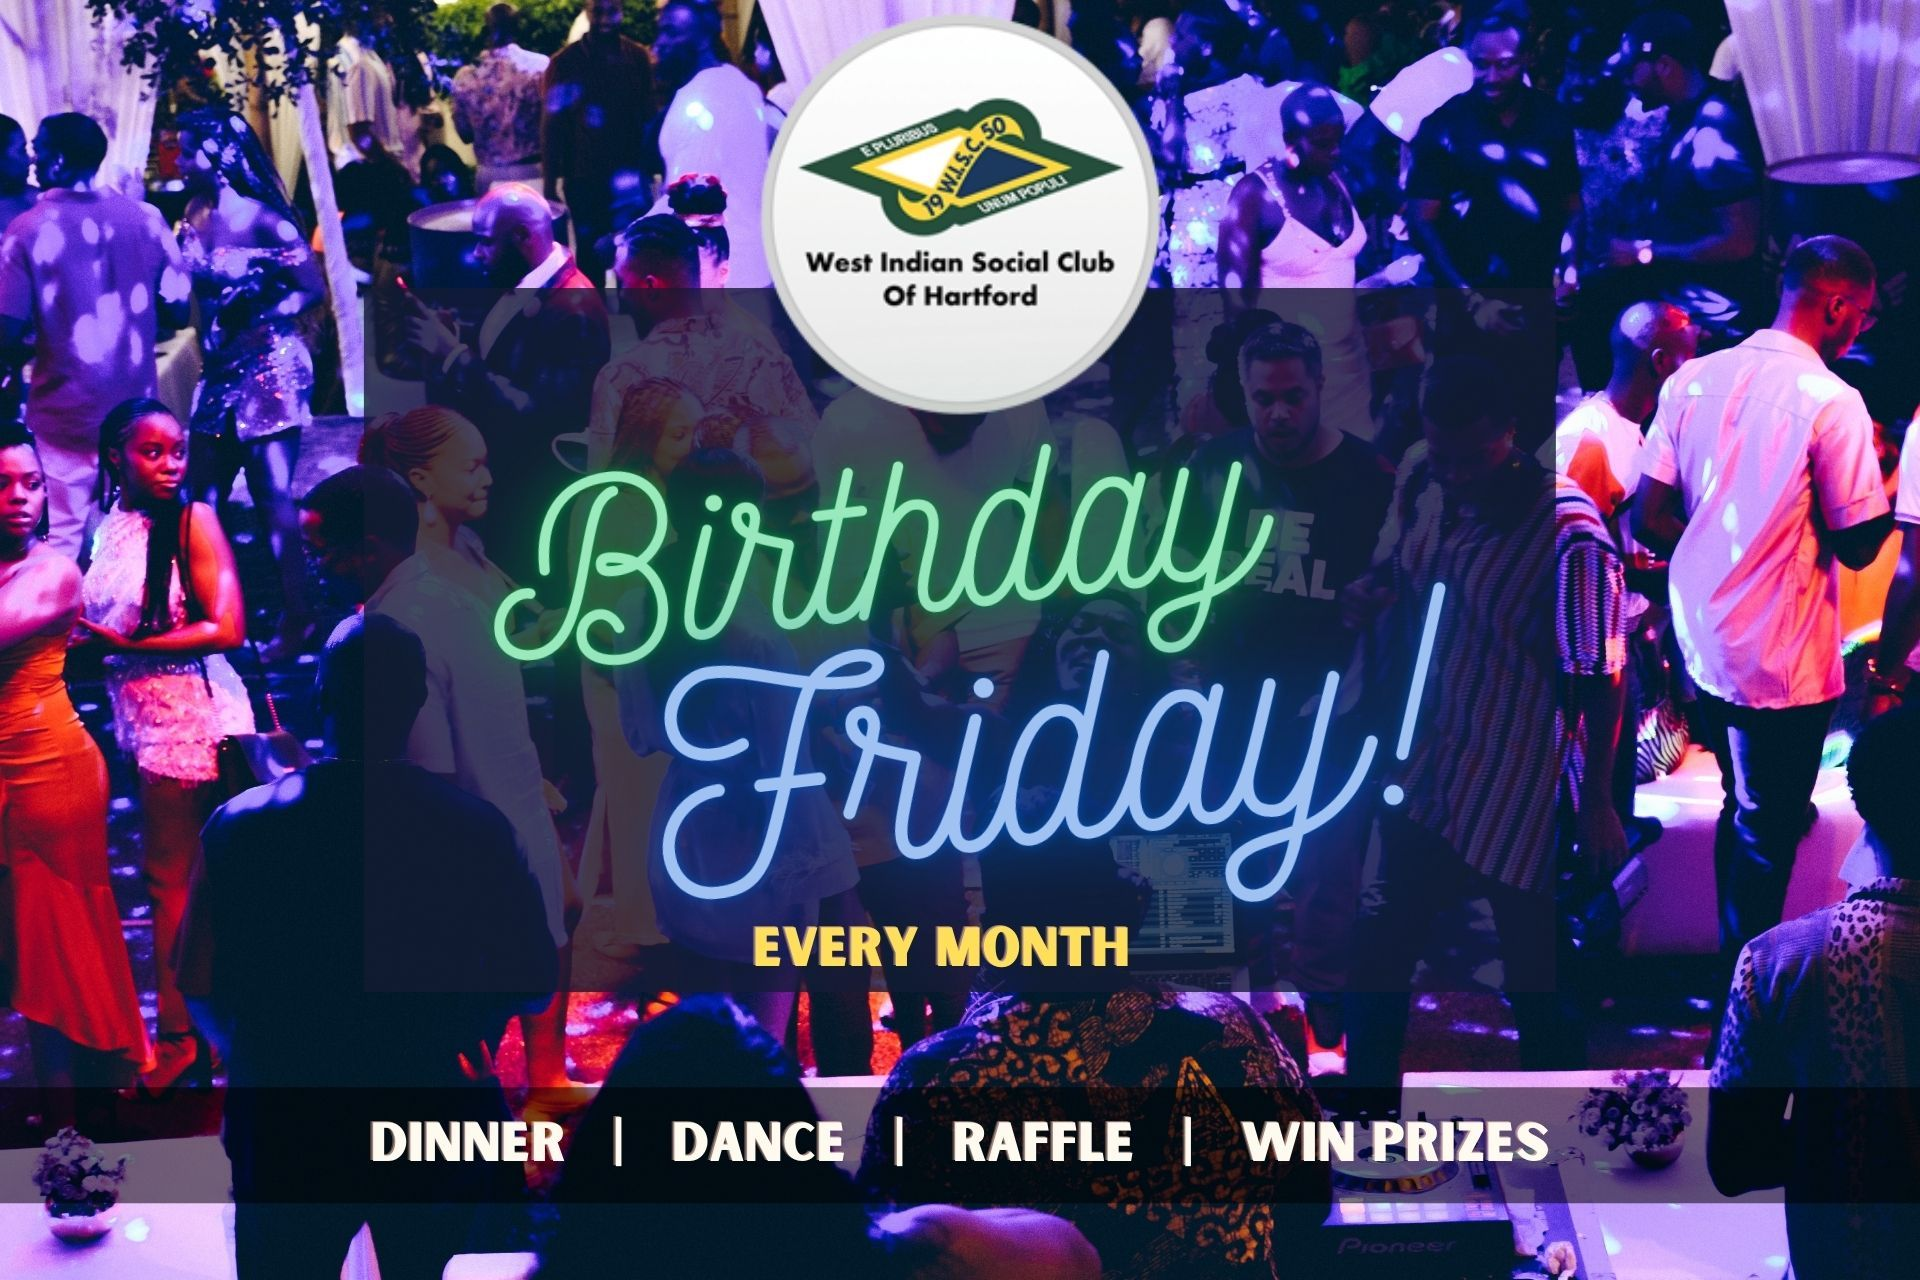 Birthday Friday - West Indian Social Club - Every Month - For Everyone